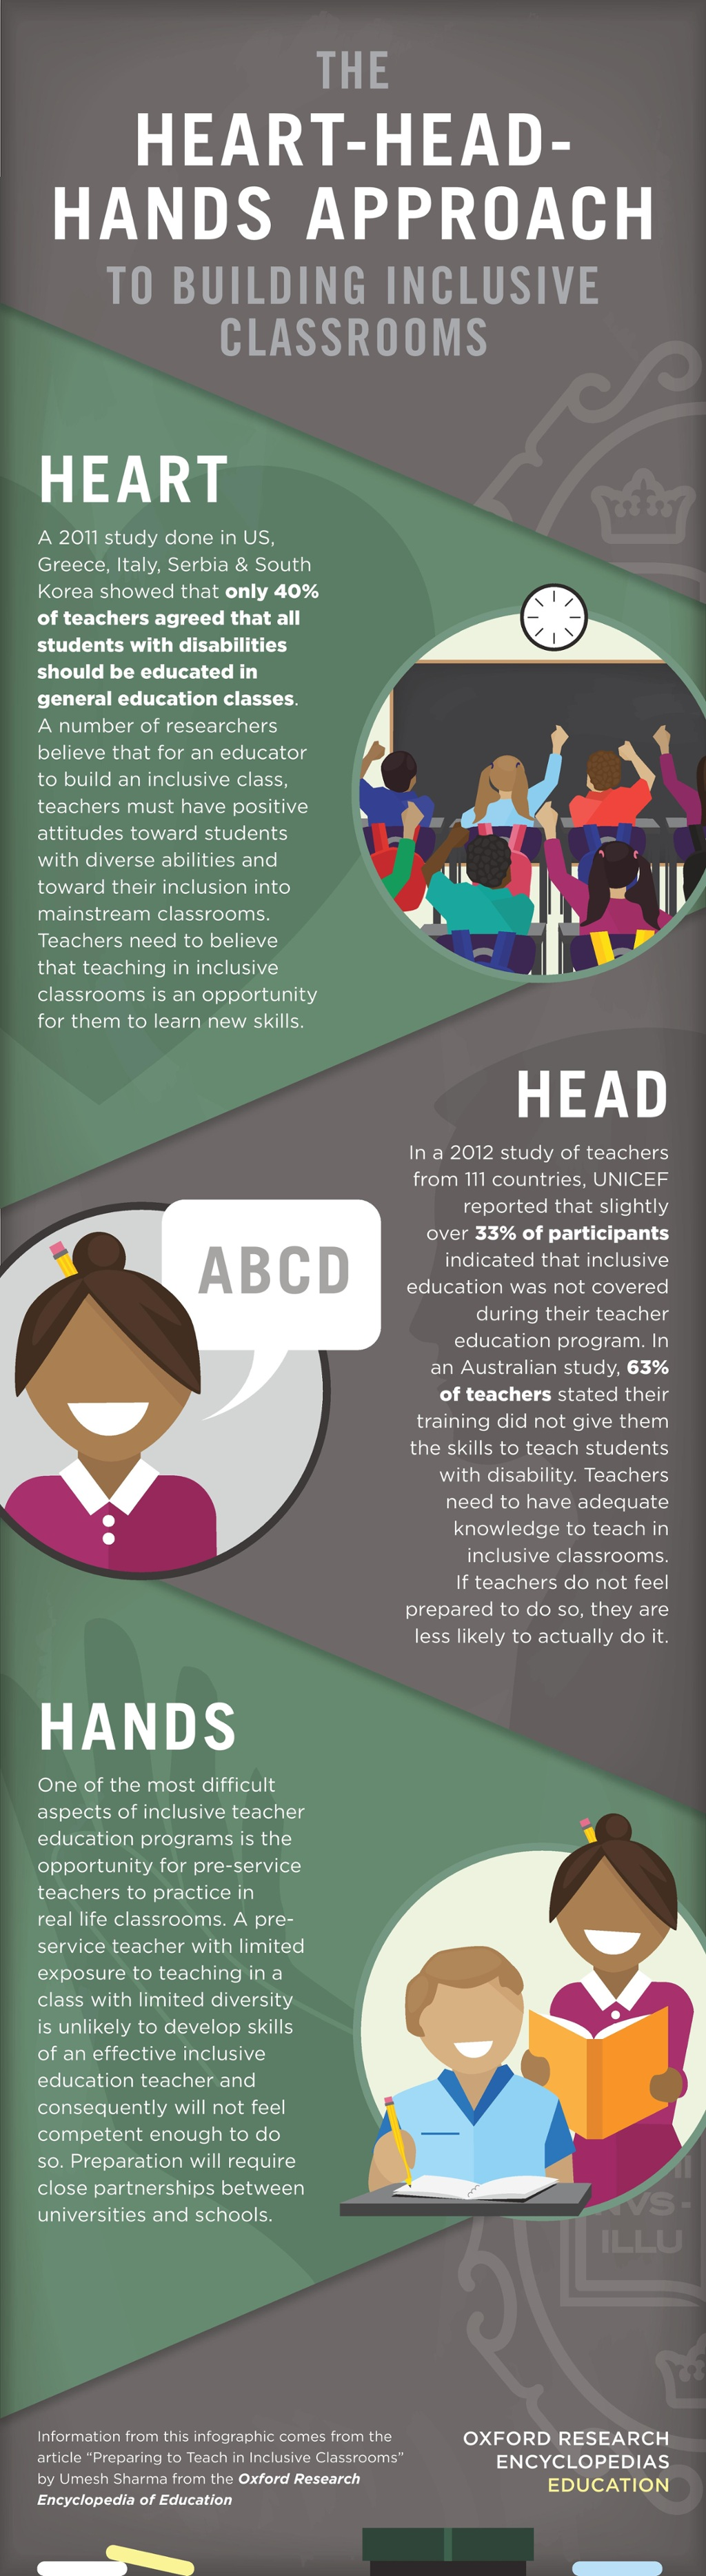 The Heart-Head-Hands Approach to Building Inclusive Classrooms (infographic)